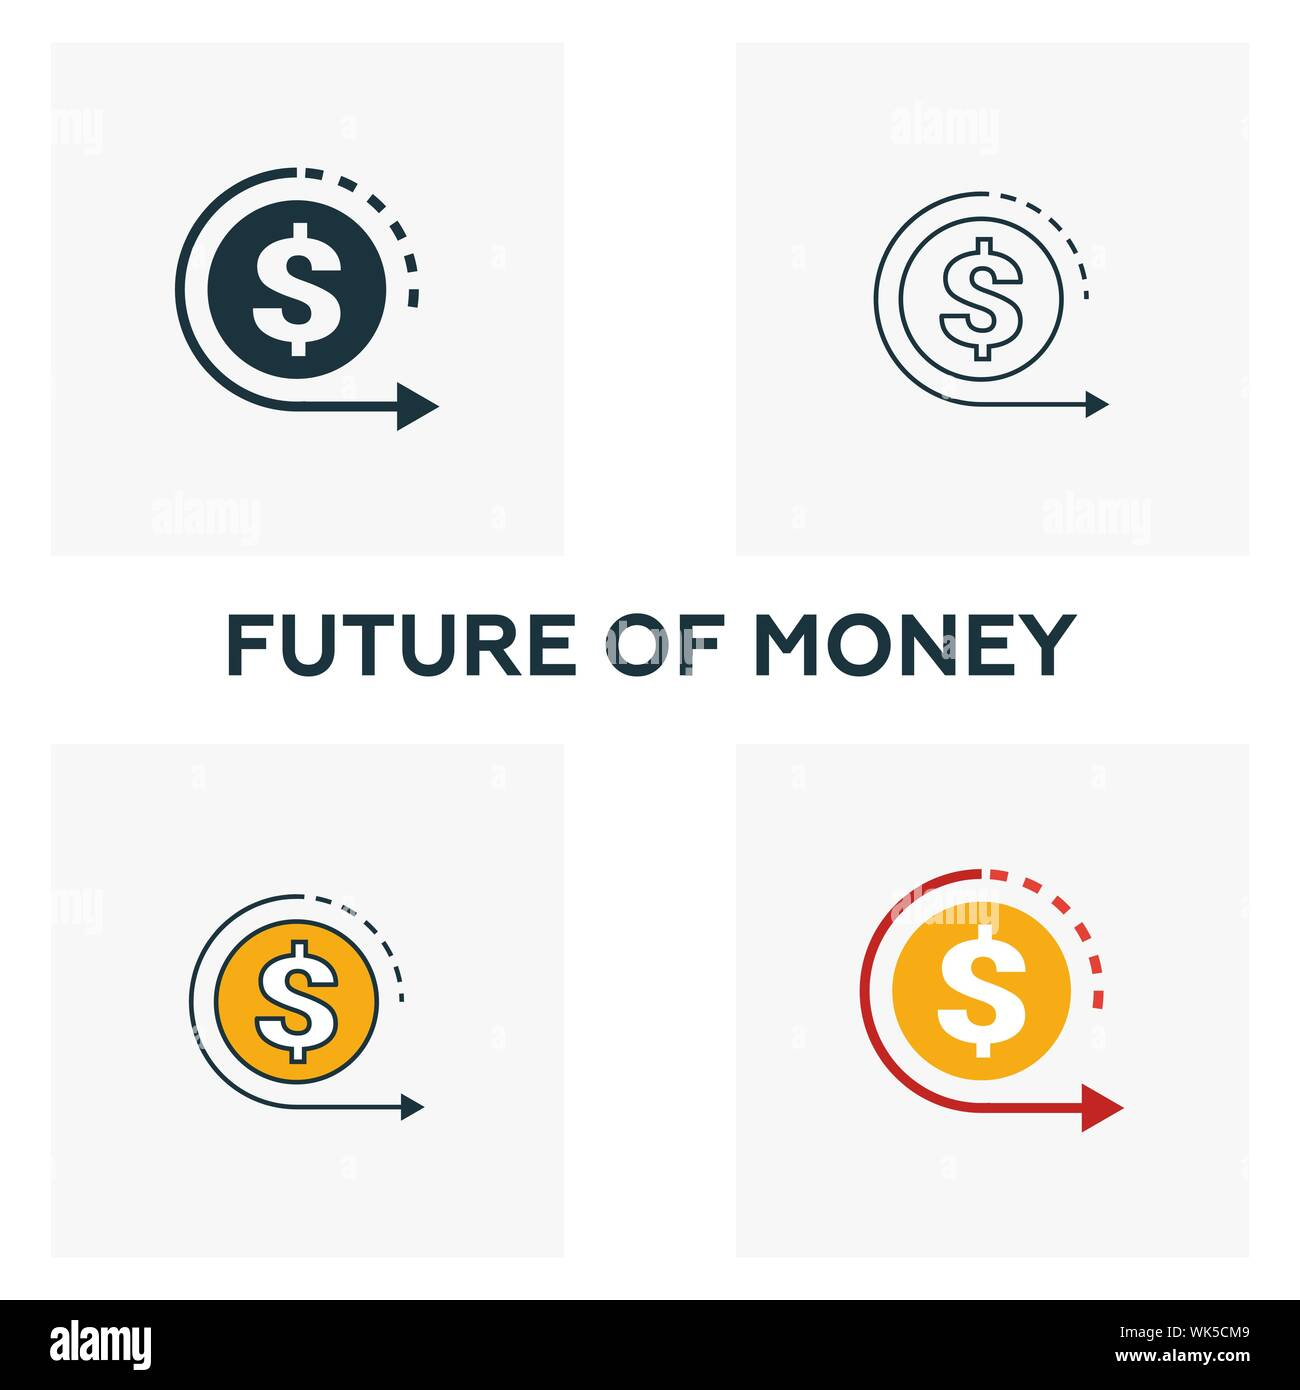 Future Of Money icon set. Four elements in diferent styles from fintech icons collection. Creative future of money icons filled, outline, colored and Stock Vector